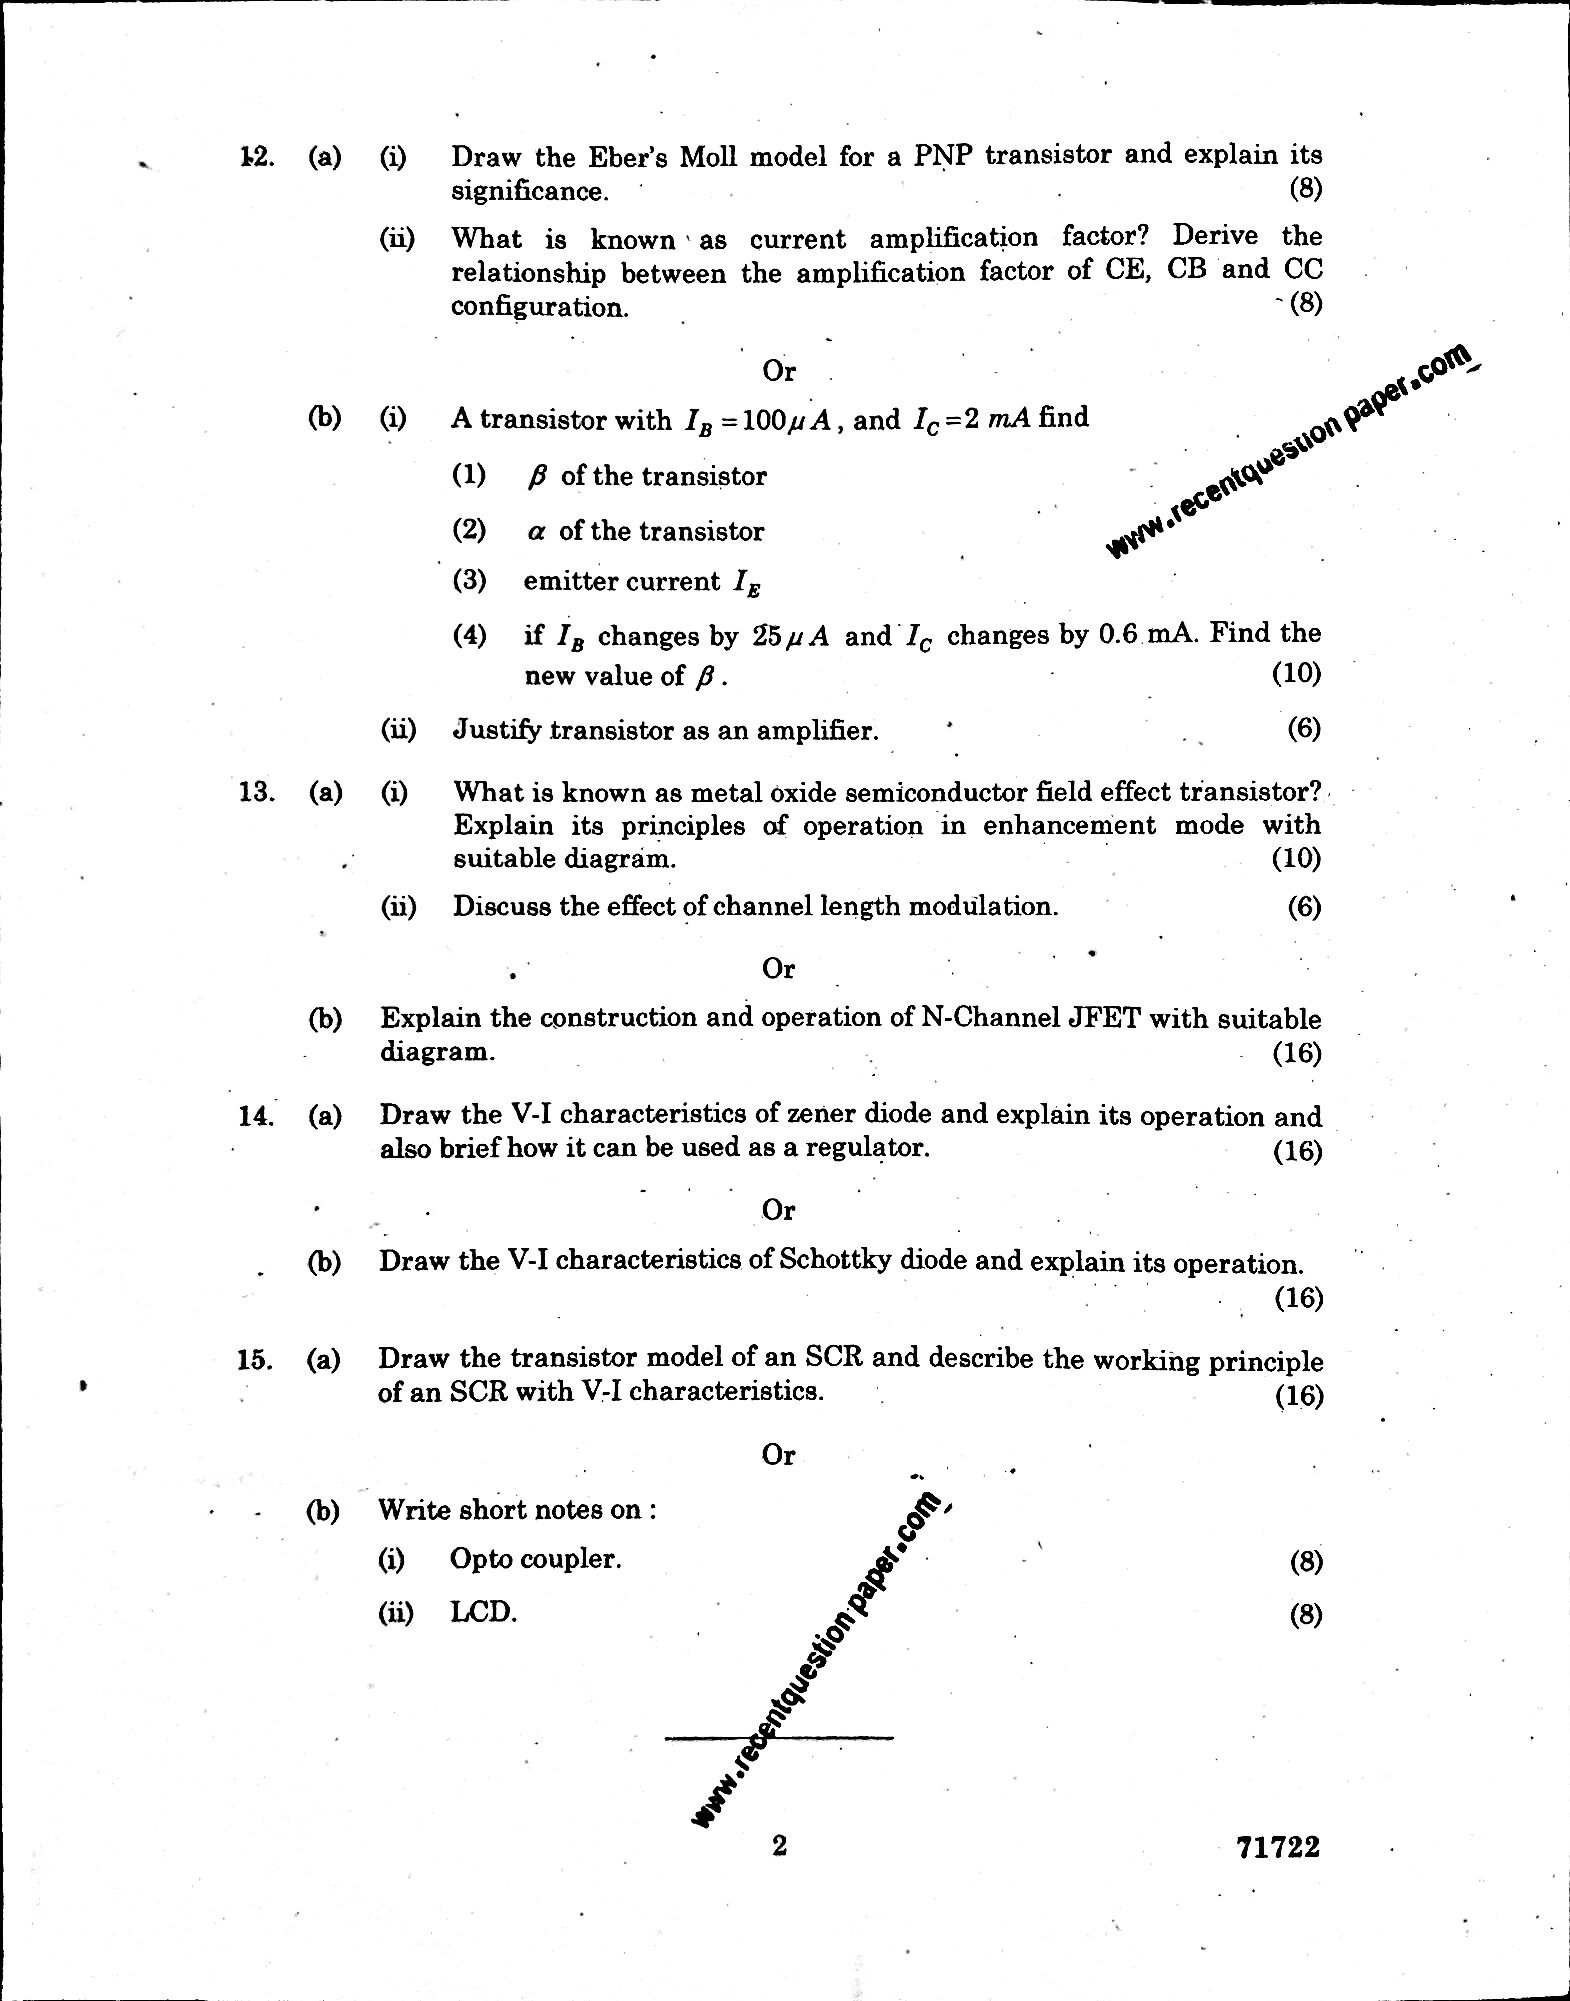 Ec6201 question paper 2017